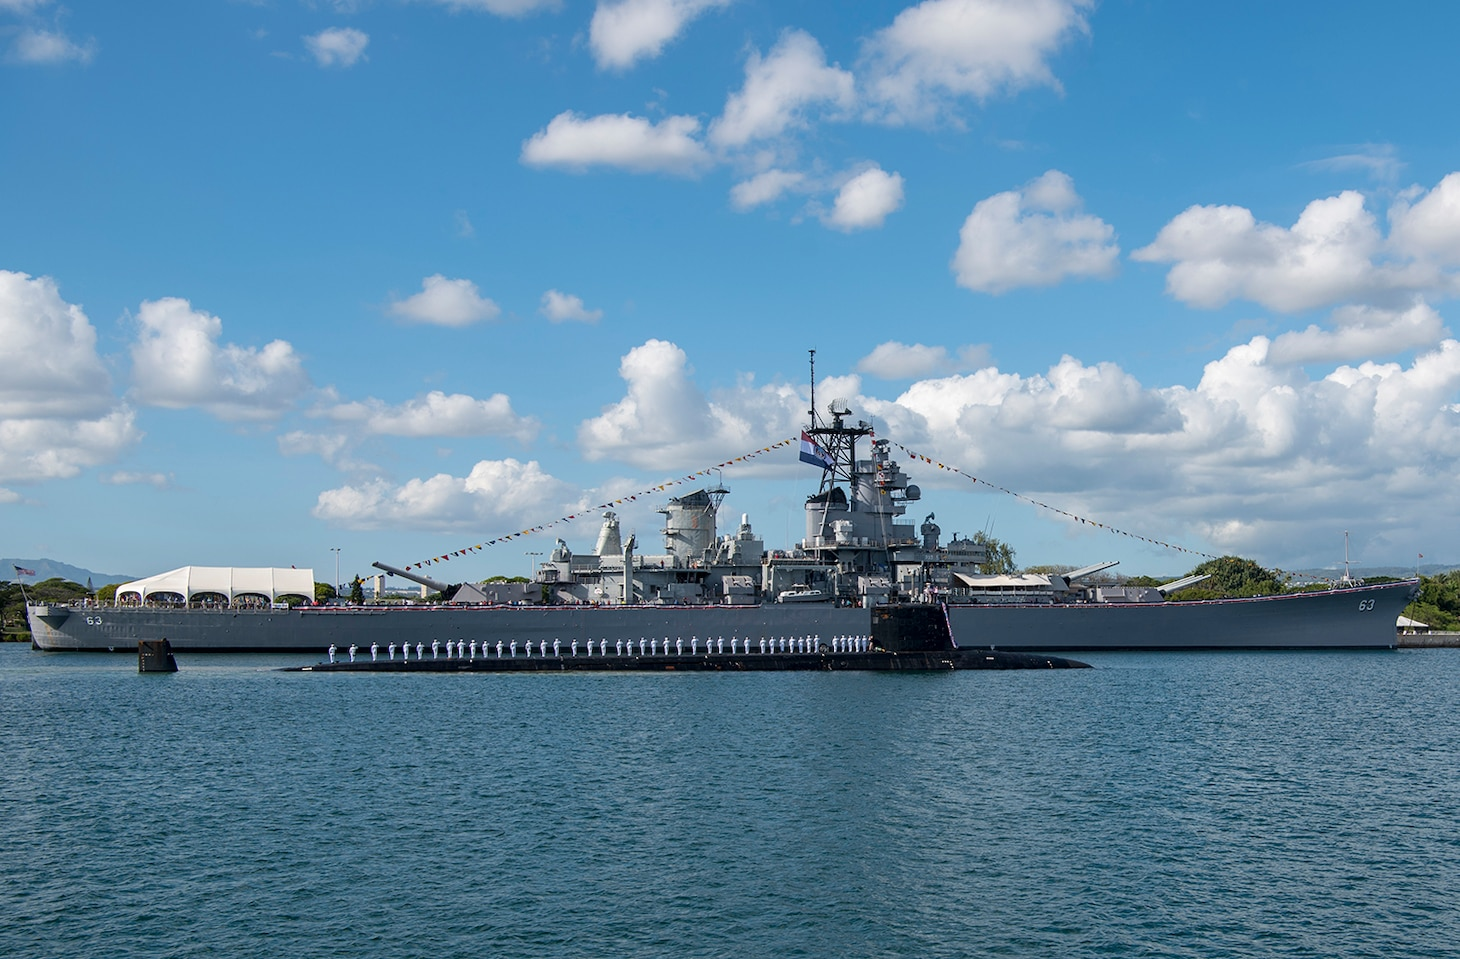 180126-N-LY160-0234 PEARL HARBOR, Hawaii (January 26, 2018) The crew of the Virginia-class fast-attack submarine USS Missouri (SSN 780) render honors to the Battleship Missouri Memorial following a homeport change from Groton, Connecticut. (U.S. Navy photo by Mass Communication Specialist 2nd Class Michael H. Lee/ Released)